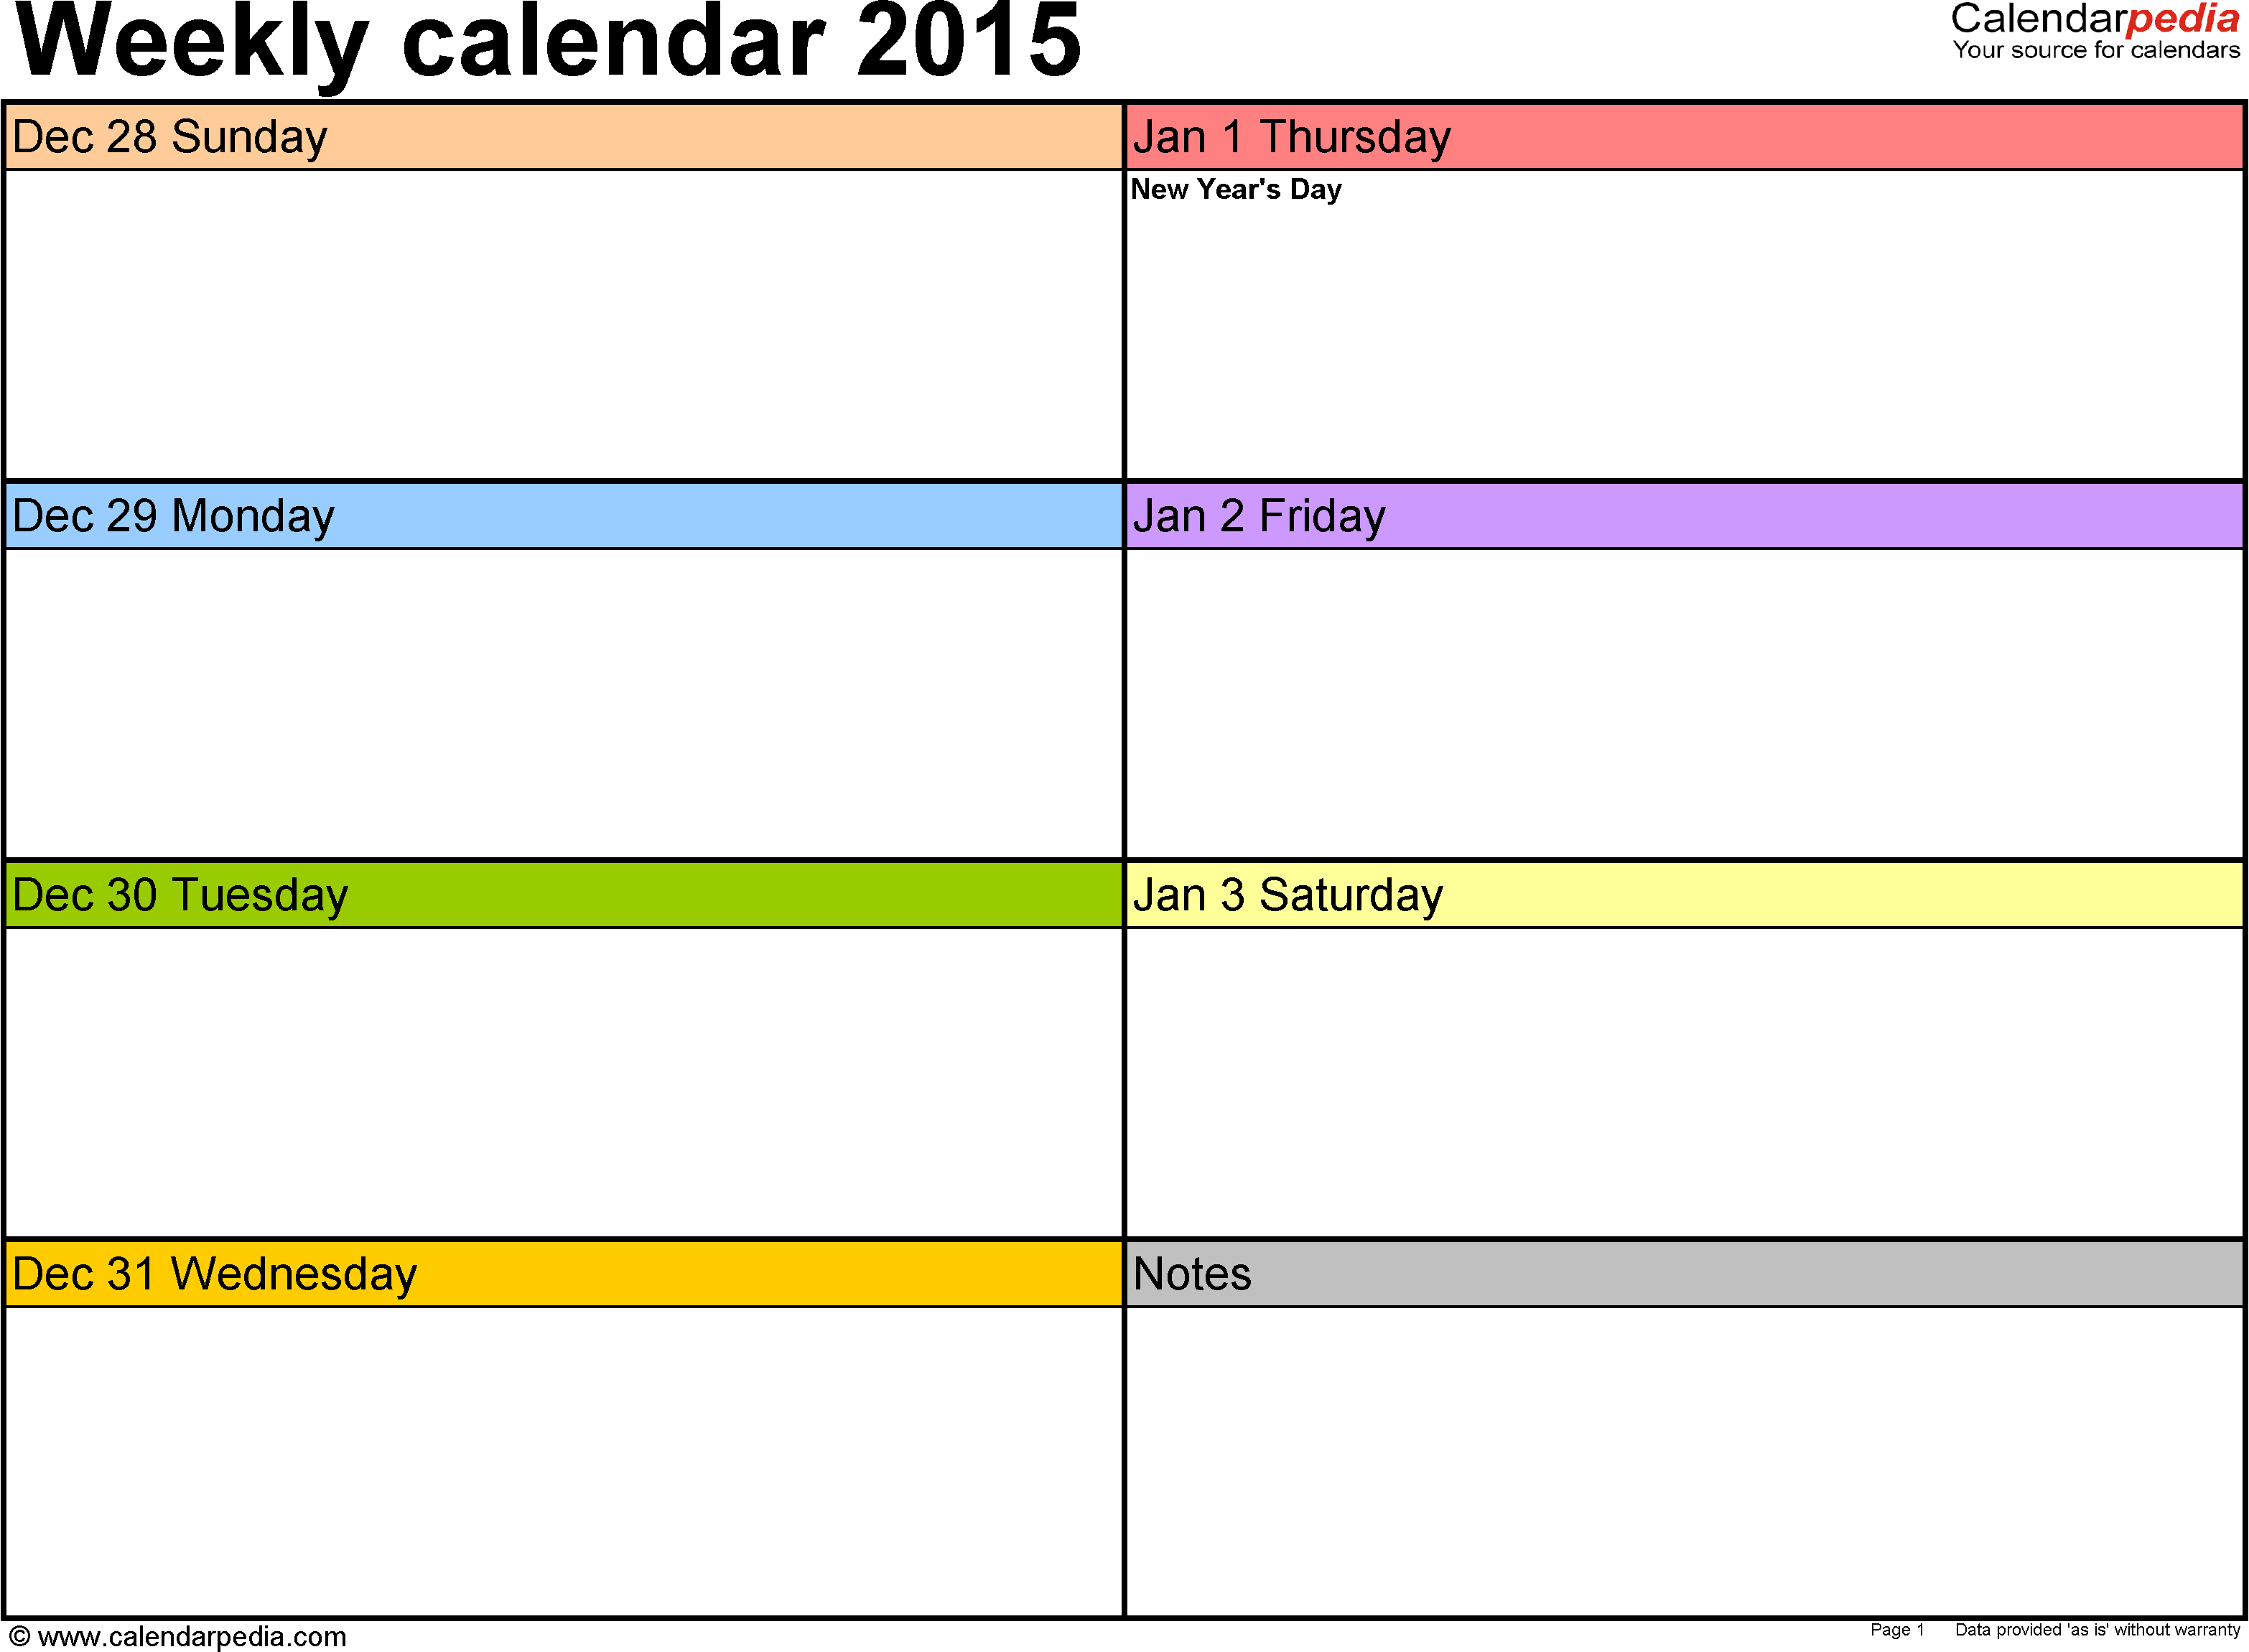 Weekly Calendar 2015 For Pdf - 12 Free Printable Templates within 7 Day Calendar Template Fillable